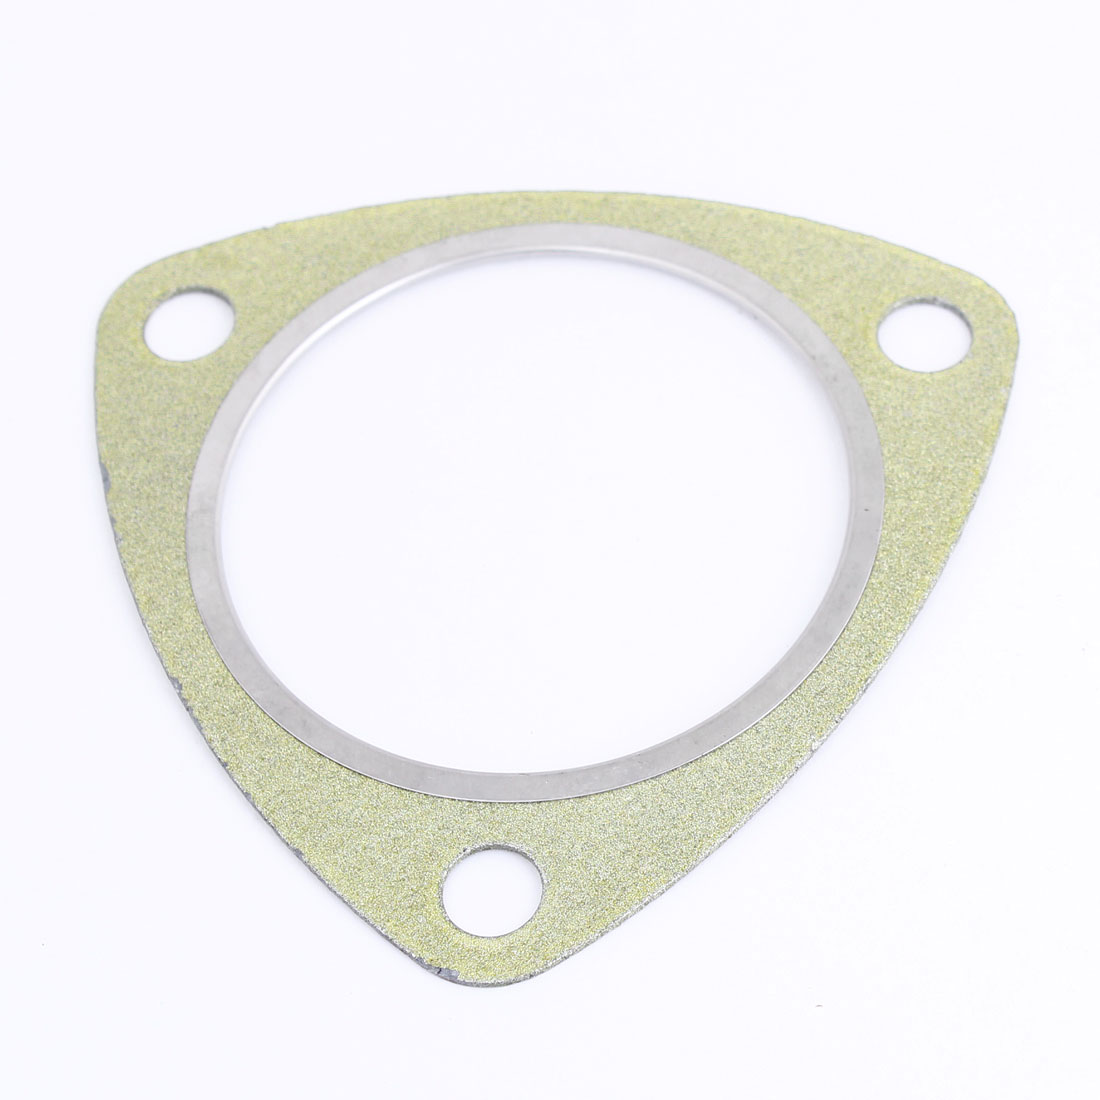 8D0253115 Metal Exhaust Pipe Silencer Gasket for Auto